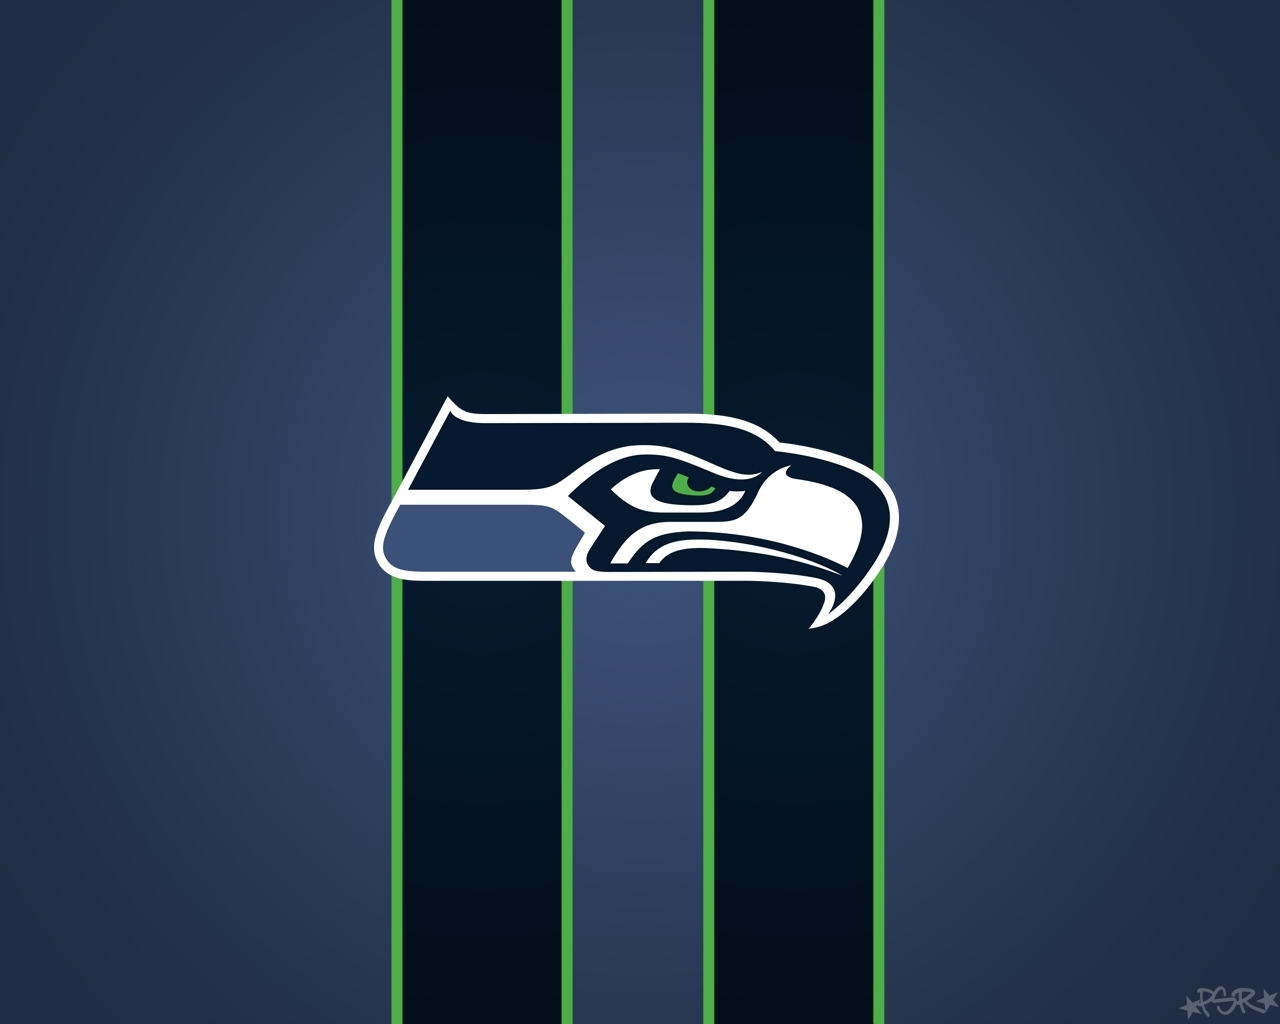 seattle seahawks wallpaper and background image | 1280x1024 | id:149104